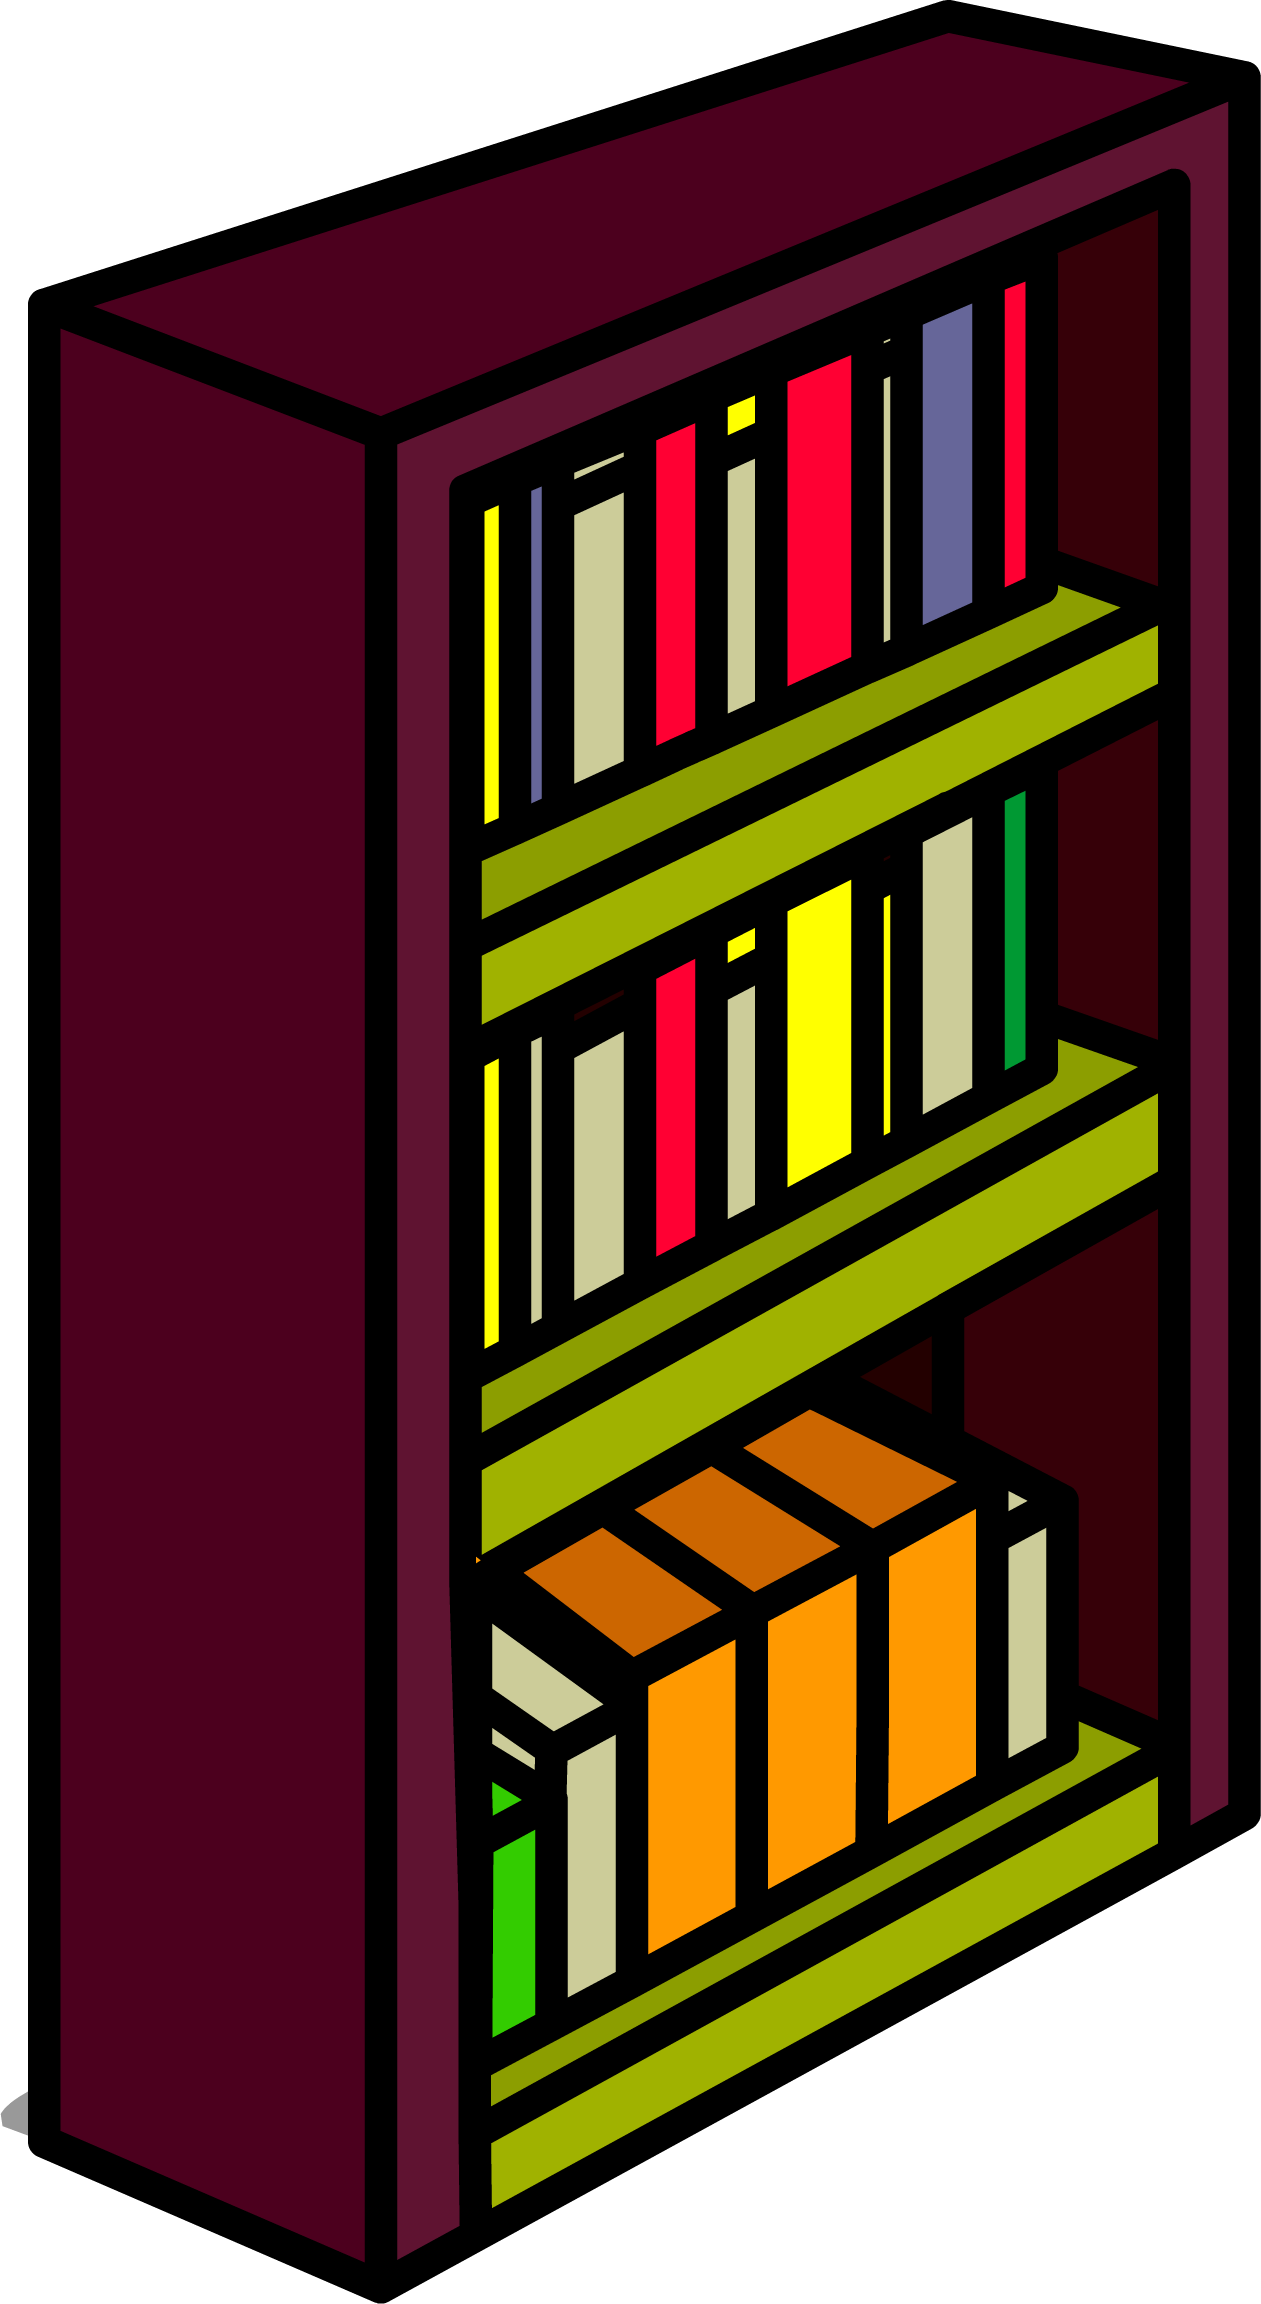 Clipart of a book shelf banner transparent stock Image - Burgundy Bookshelf sprite 010.png | Club Penguin Wiki ... banner transparent stock